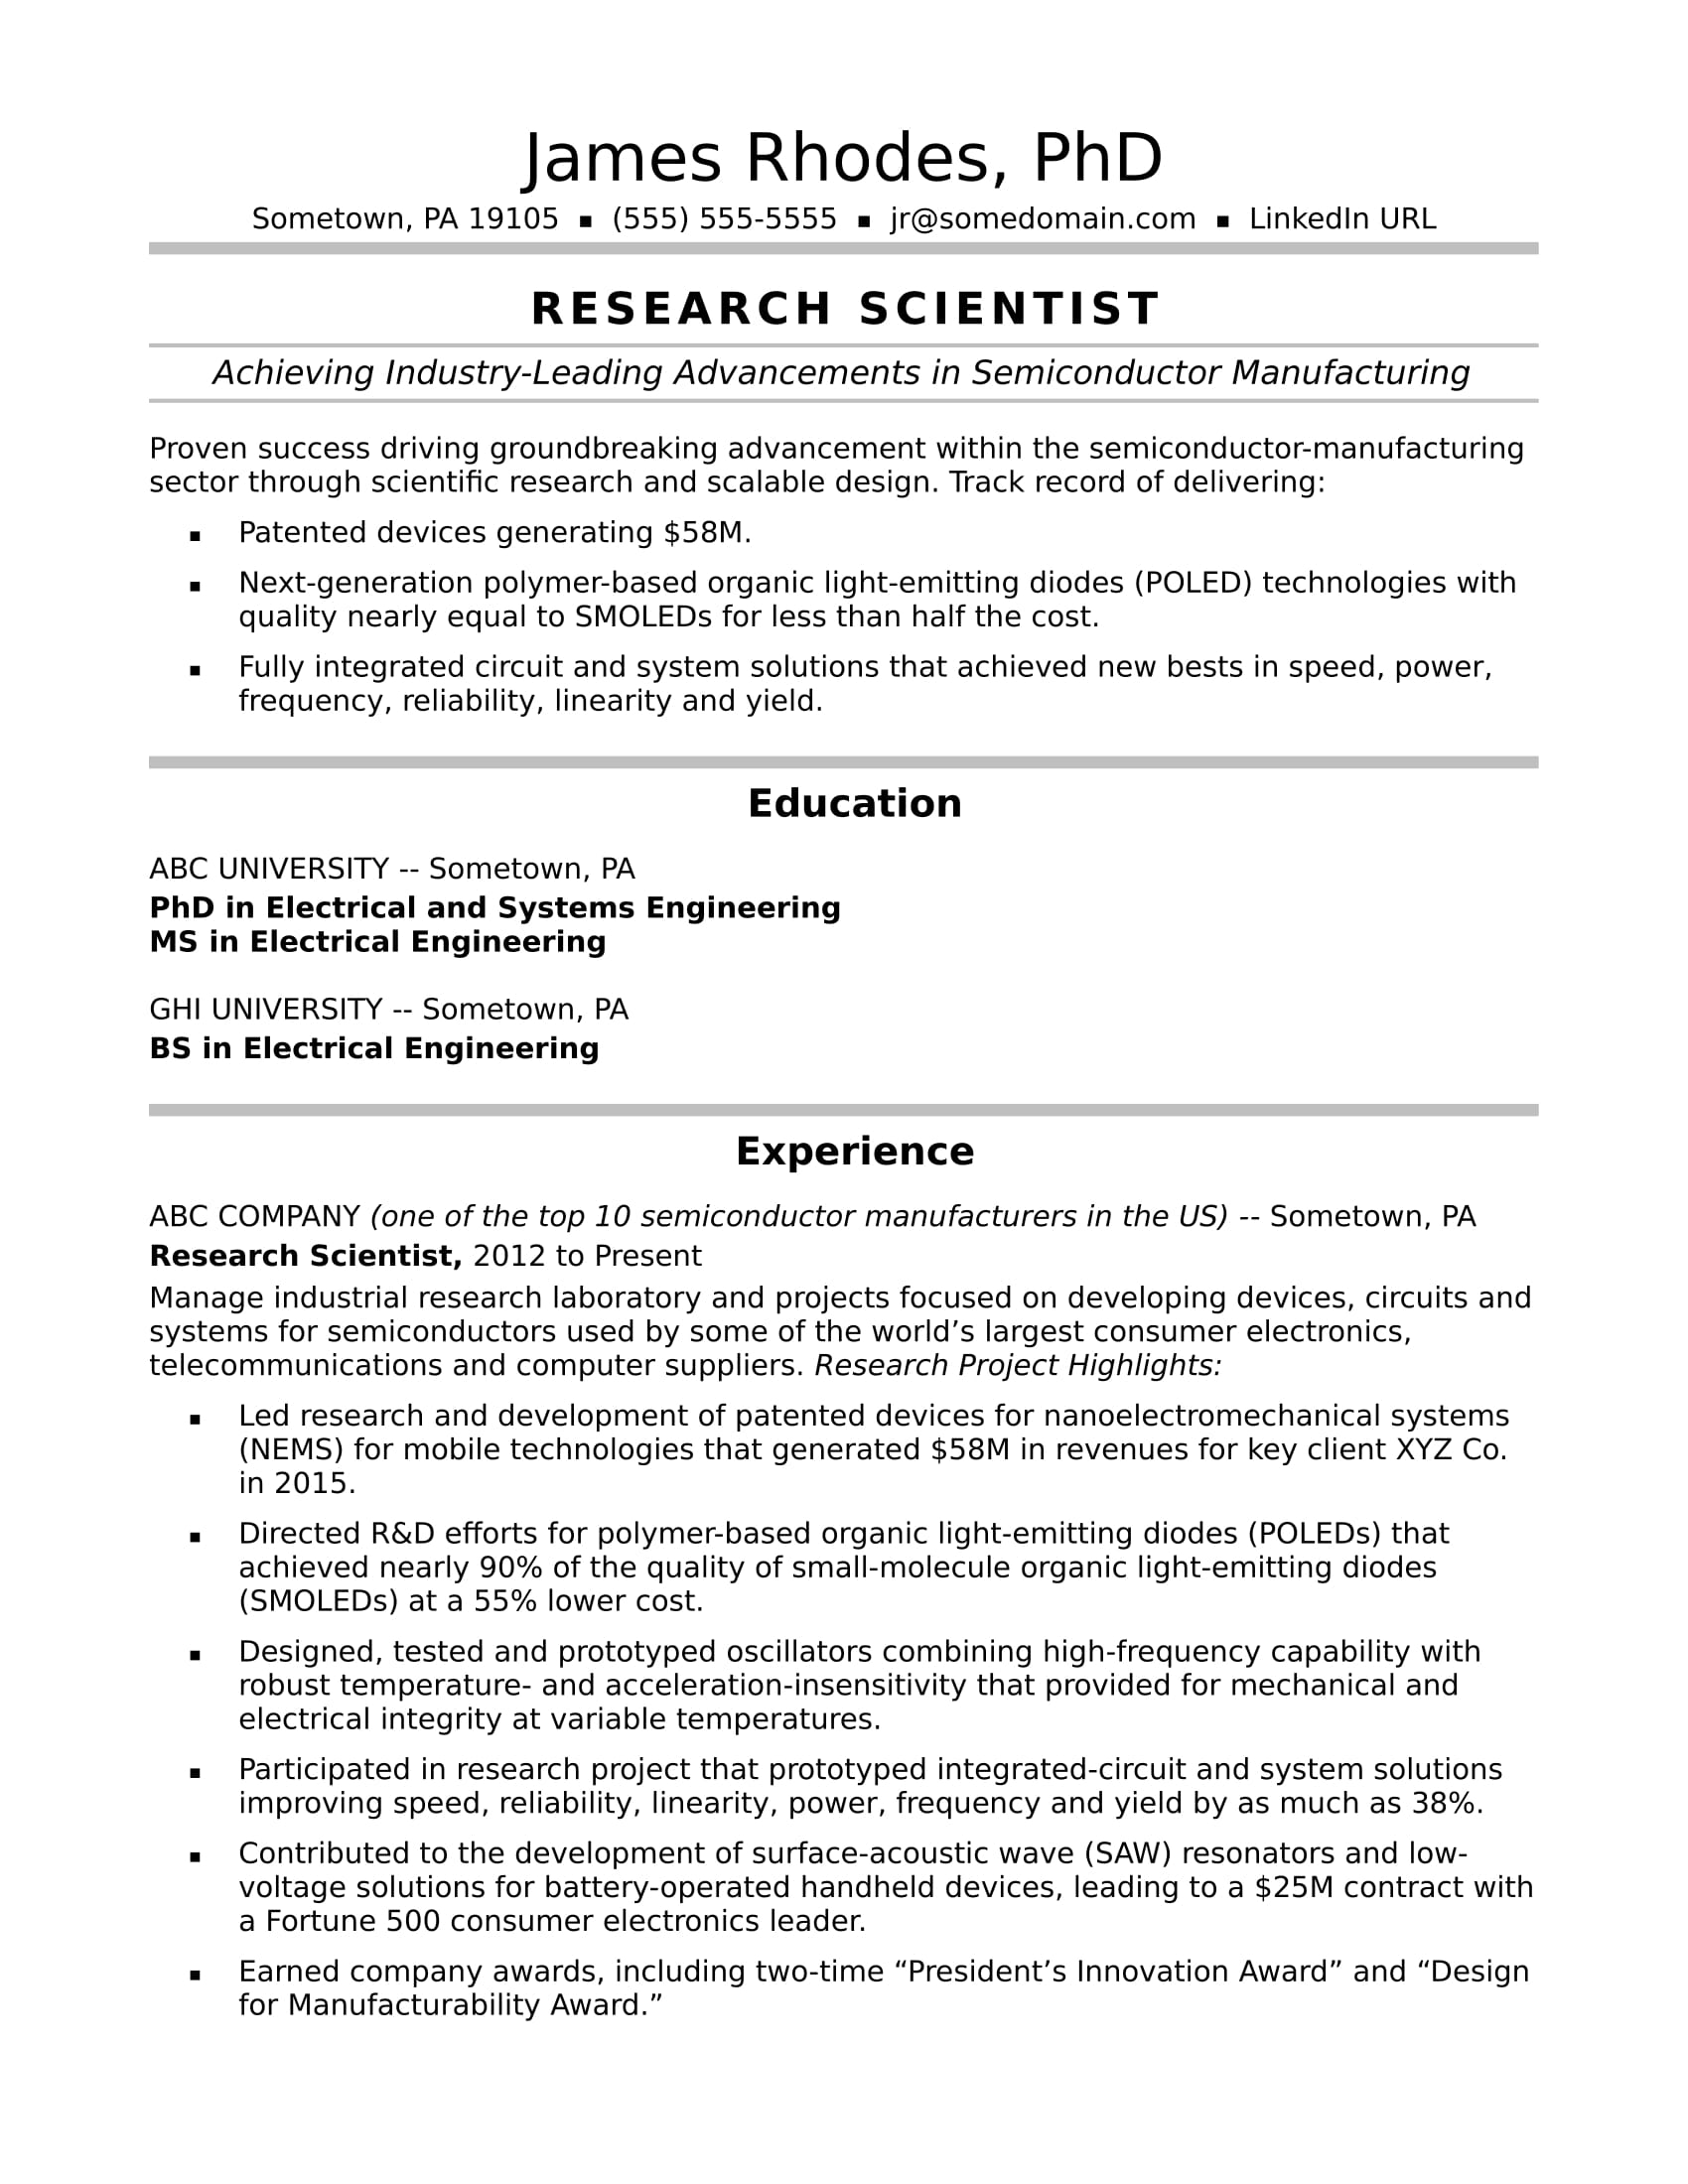 Research Scientist Resume Sample Monster Com